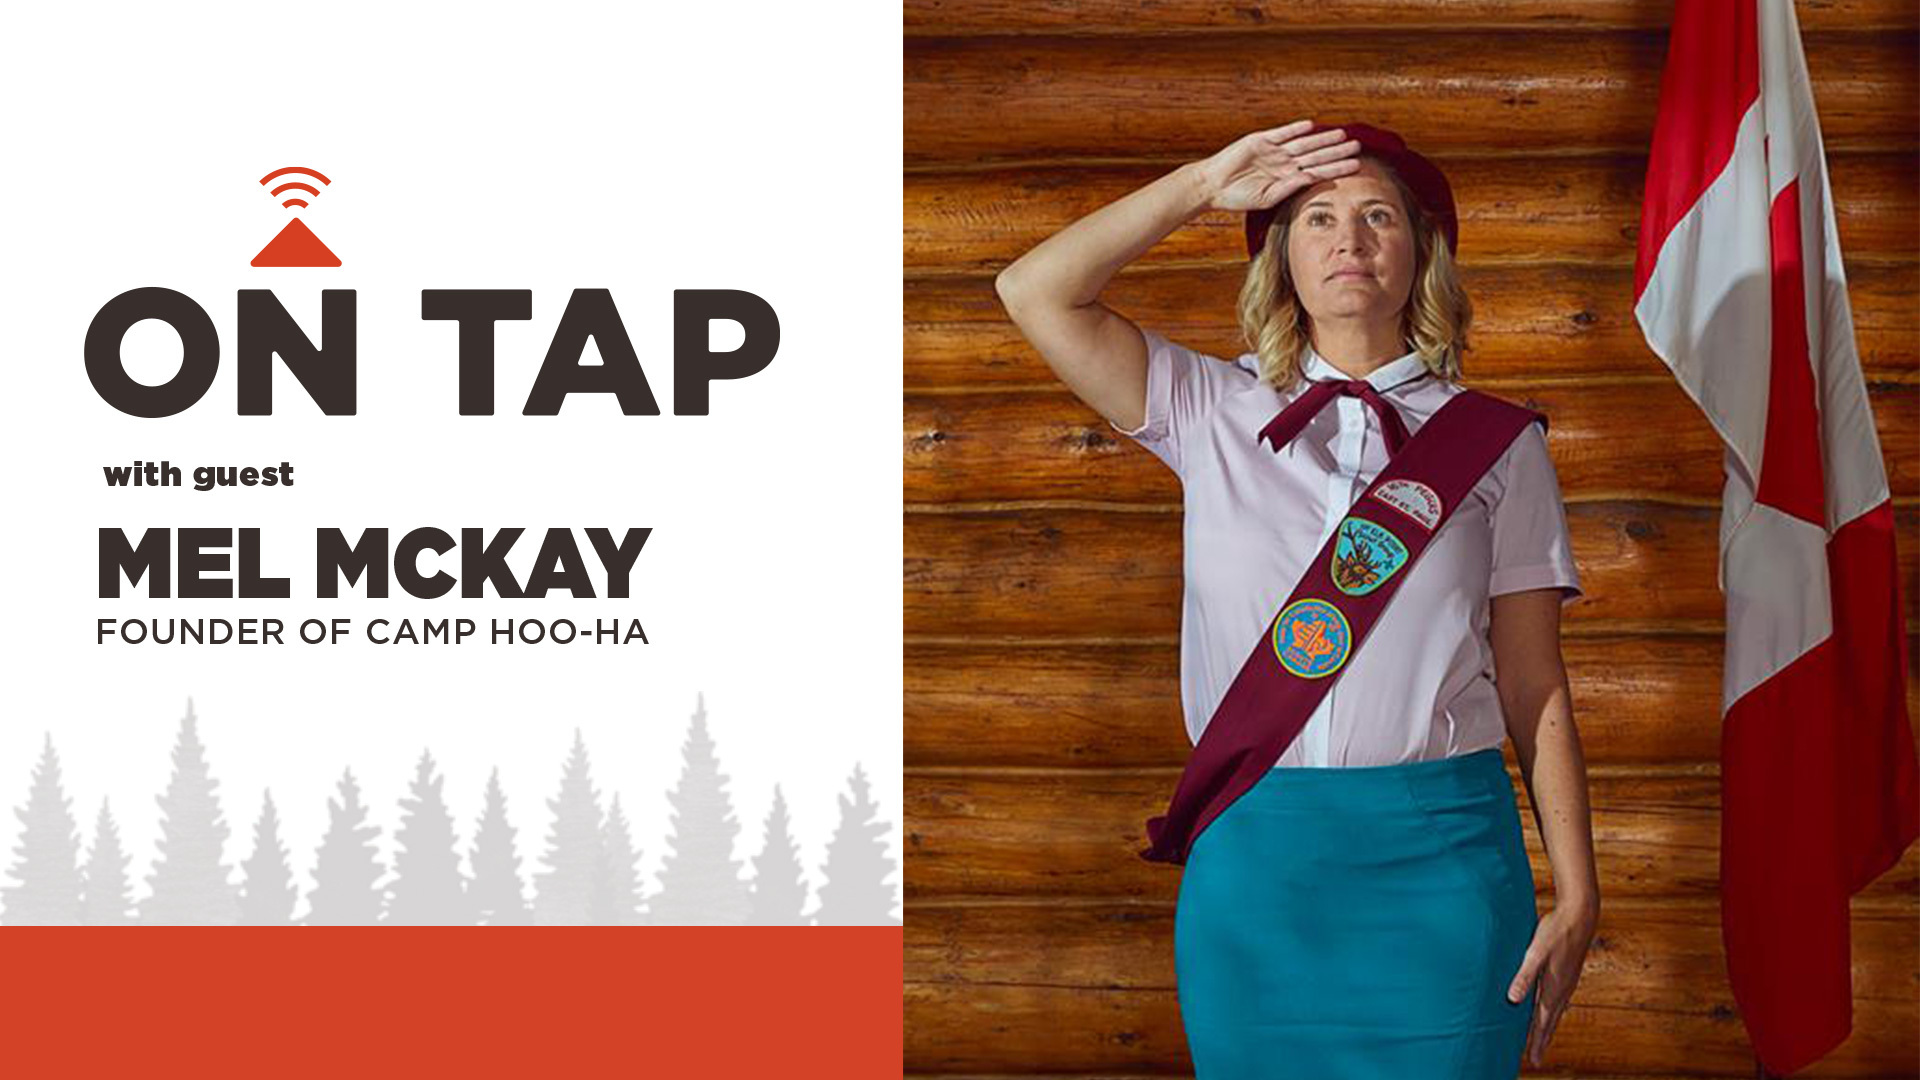 On tap with Mel McKay Camp Hoo-Ha